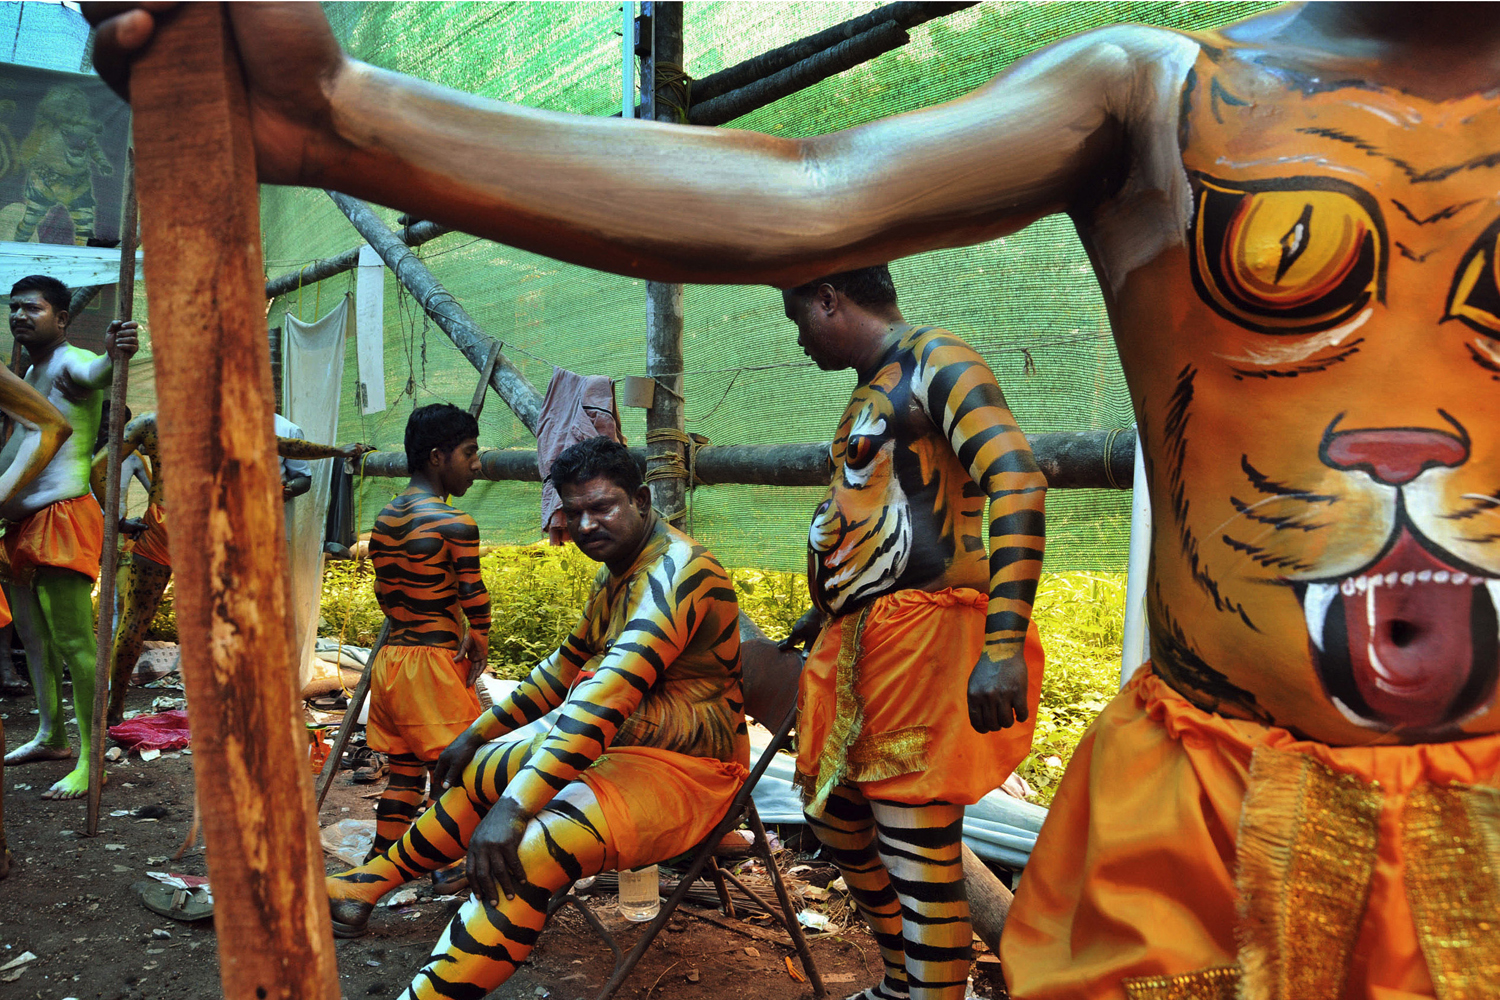 September 12, 2011. Indian artists with their bodies painted wait to perform at the annual  Pulikali,  or Tiger Dance, in Thrissur, Kerala, India. Participants with their bodies painted to resemble tigers and leopards roam the streets during this festival which falls on the fourth day of the harvest festival  Onam.